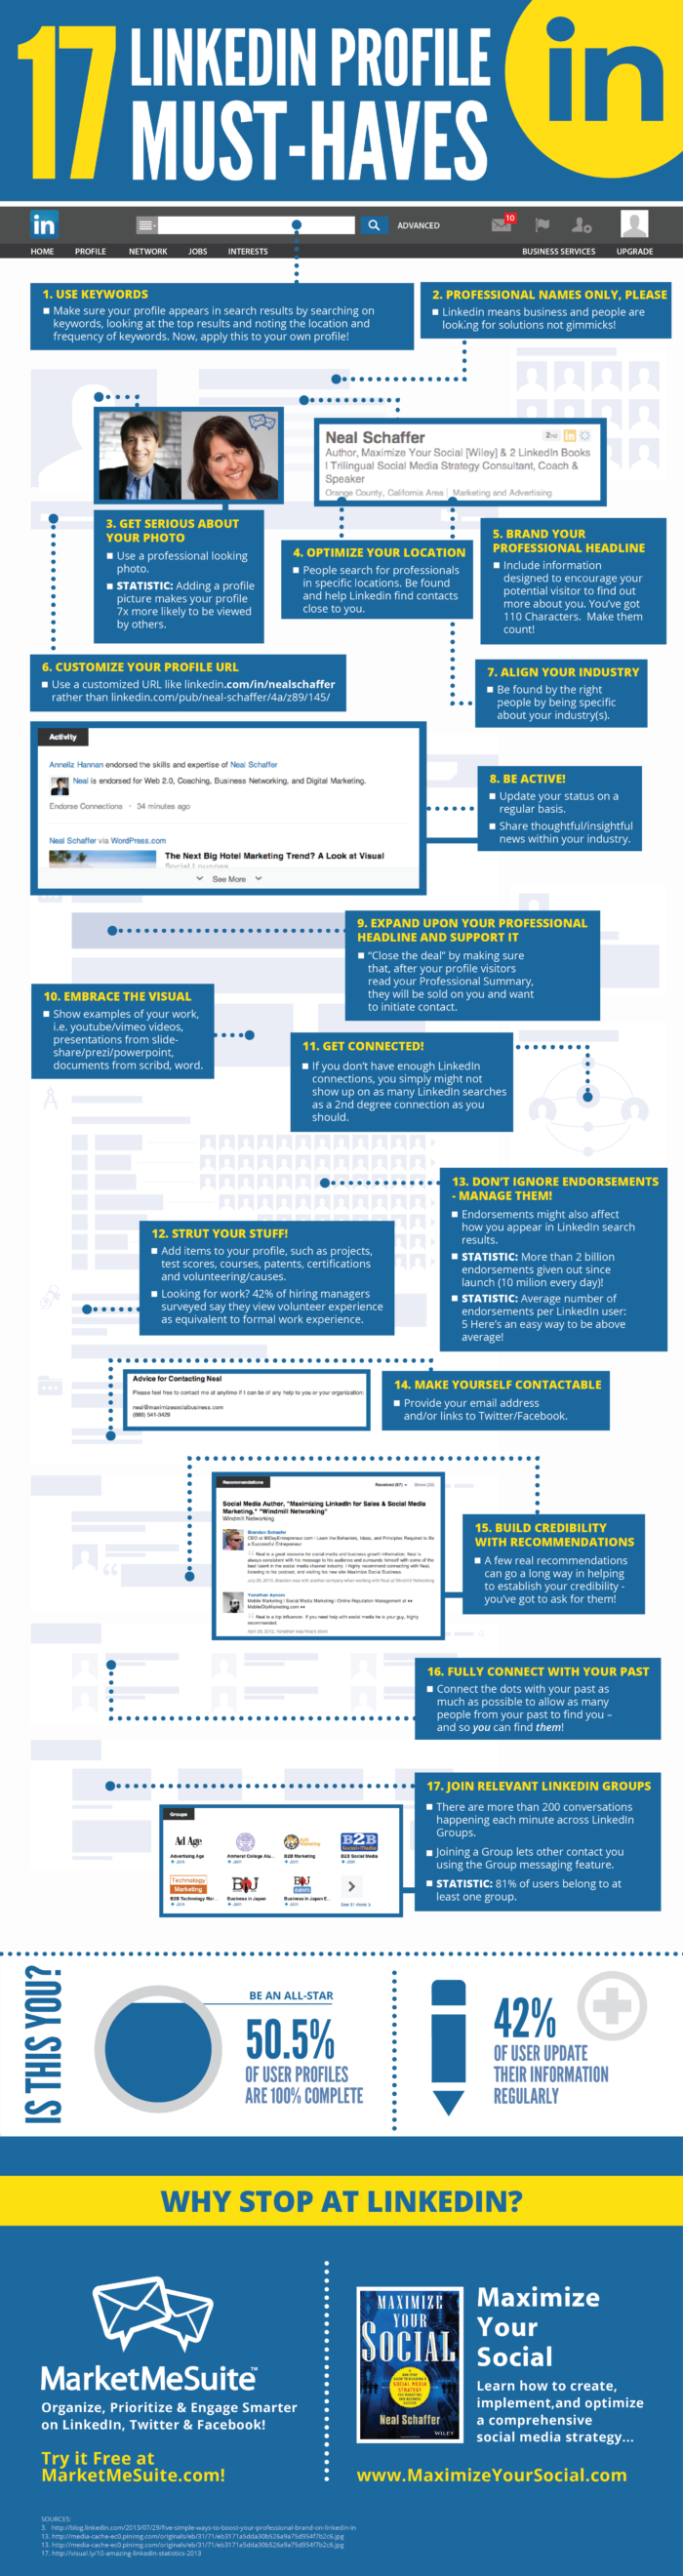 LinkedIn-Perfect-Profile-Tips-Summary-Infographic